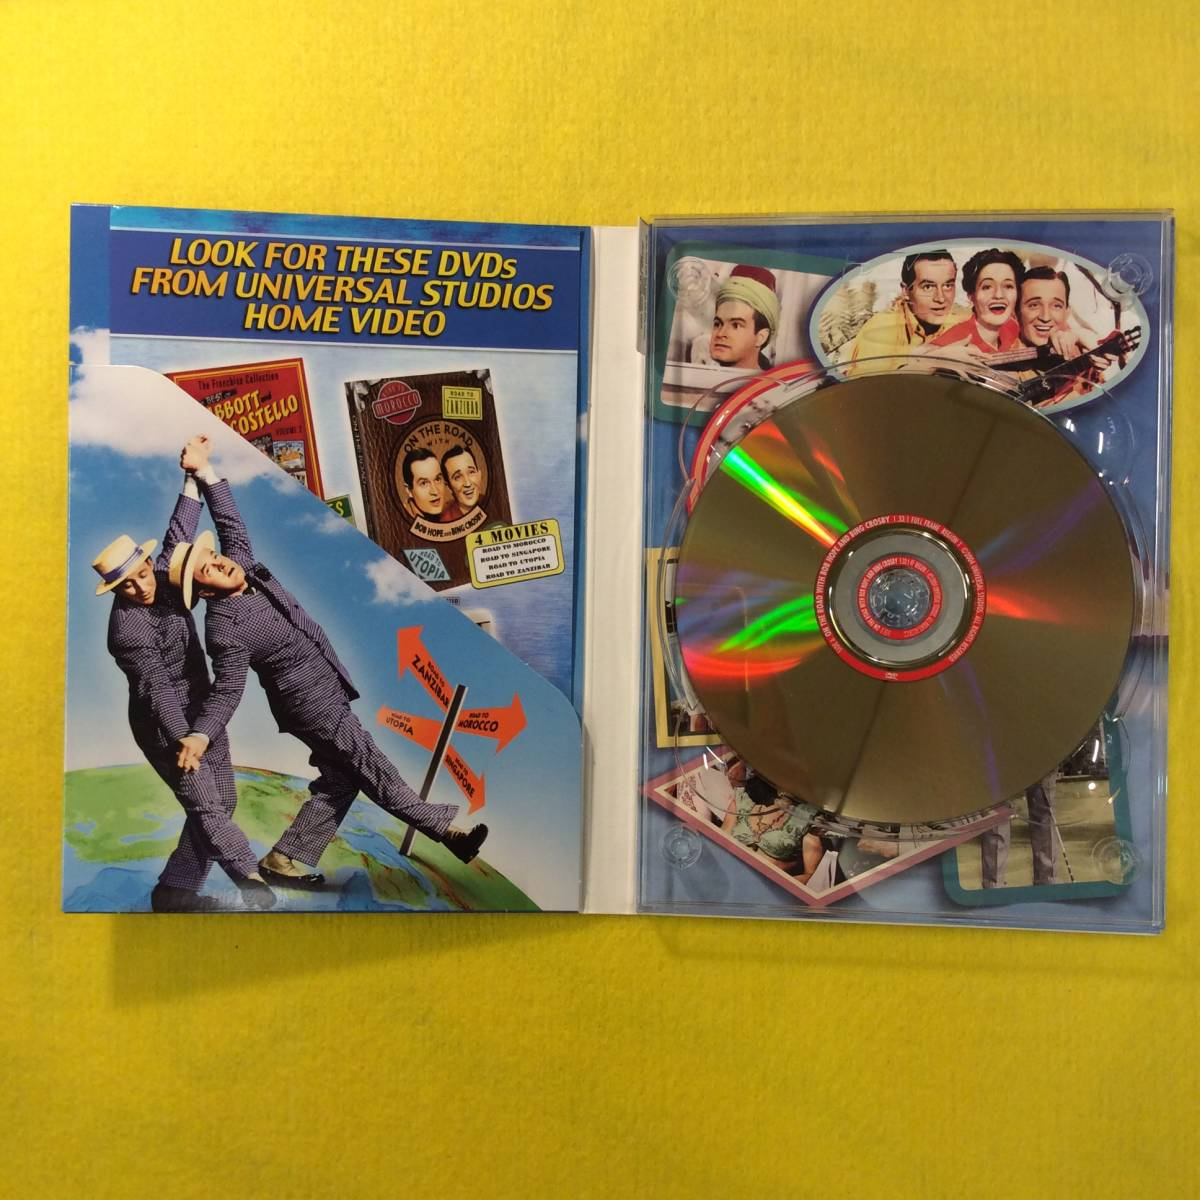 【DVD】珍道中シリーズ★ON THE ROAD with BOB HOPE and BING CROSBY★輸入盤・リージョン1★ボブ・ホープ/ビング・クロスビー★映画_画像5